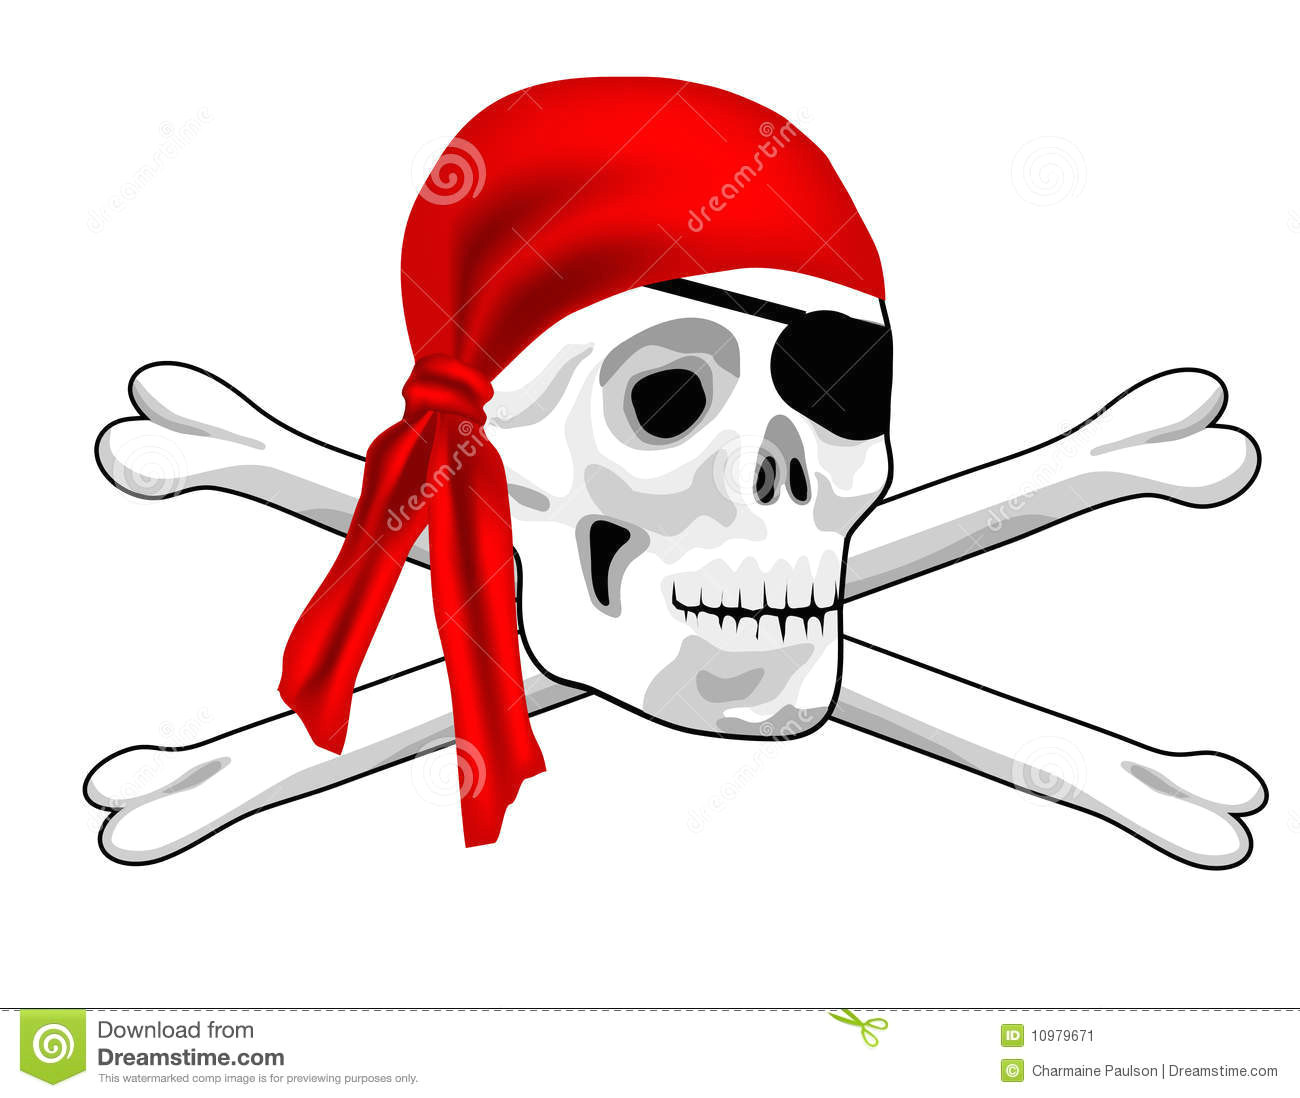 a graphic illustration of a pirate skull and bones